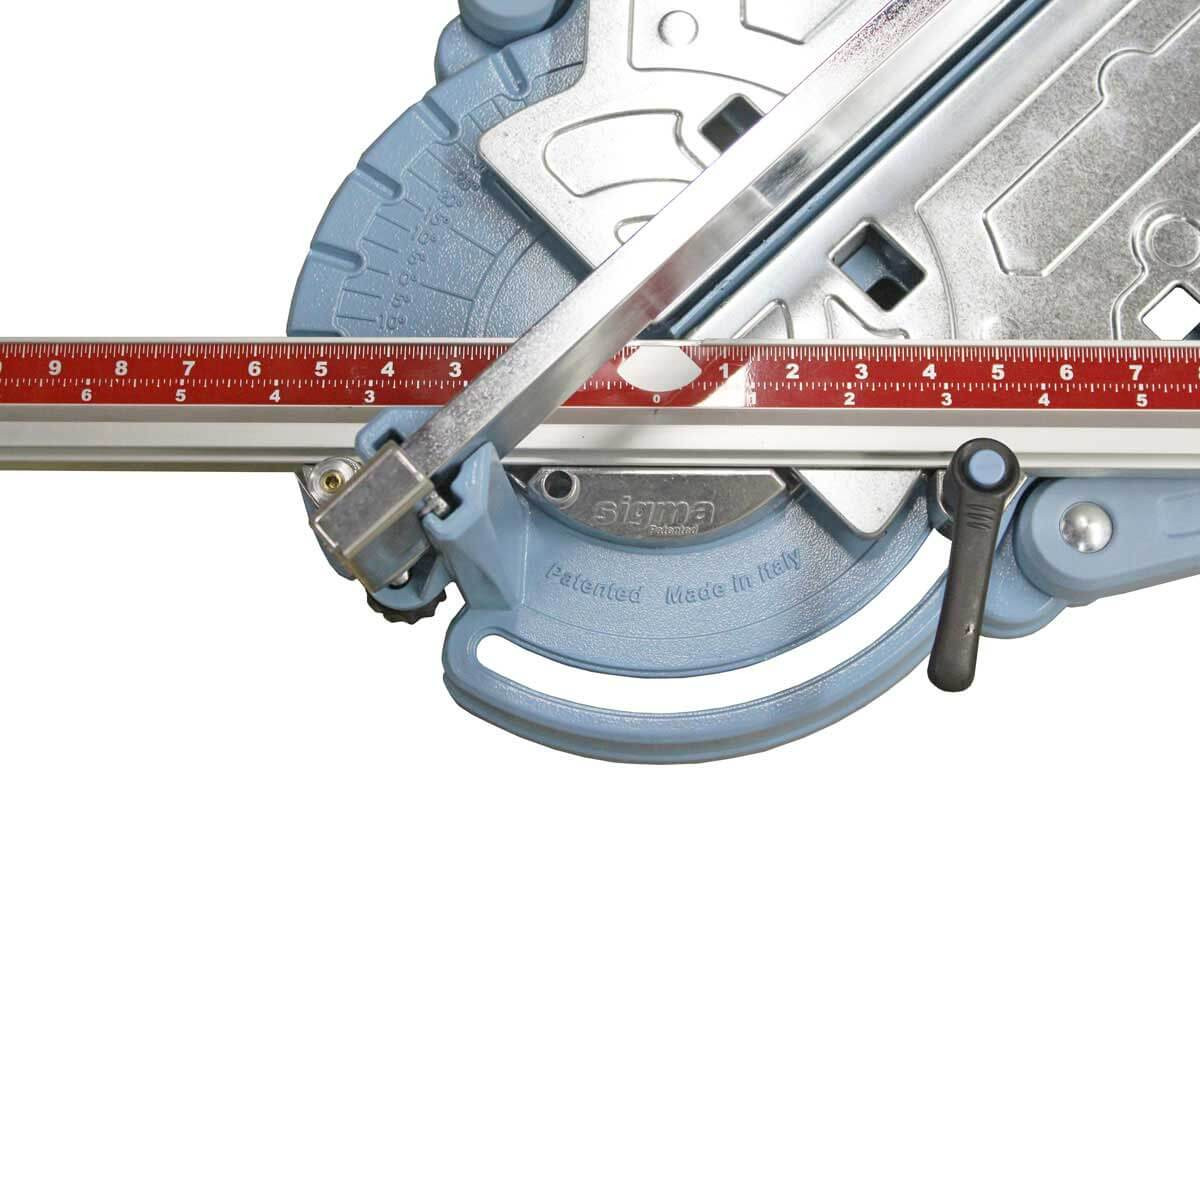 Sigma Tile Cutter 3E3M Guide